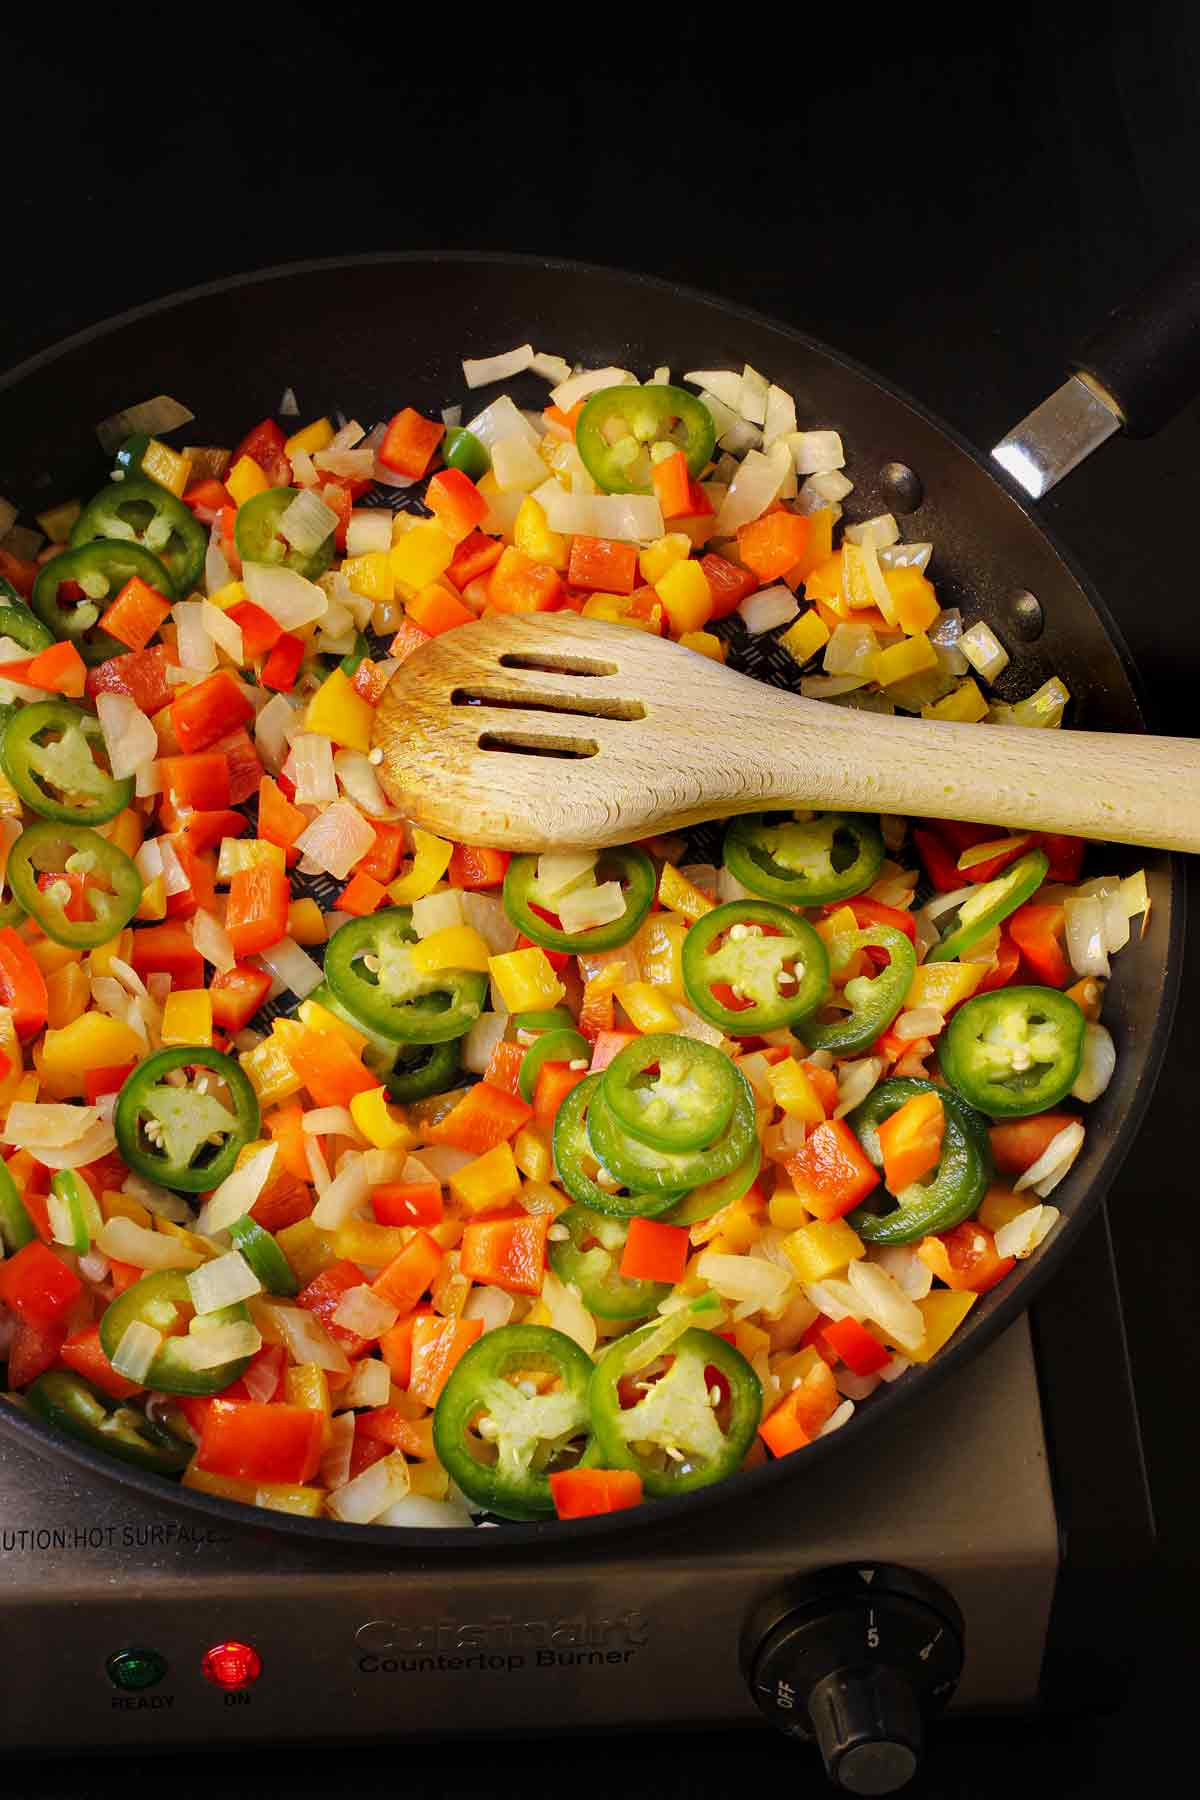 the cooked vegetables in the skillet with a wooden spoon.